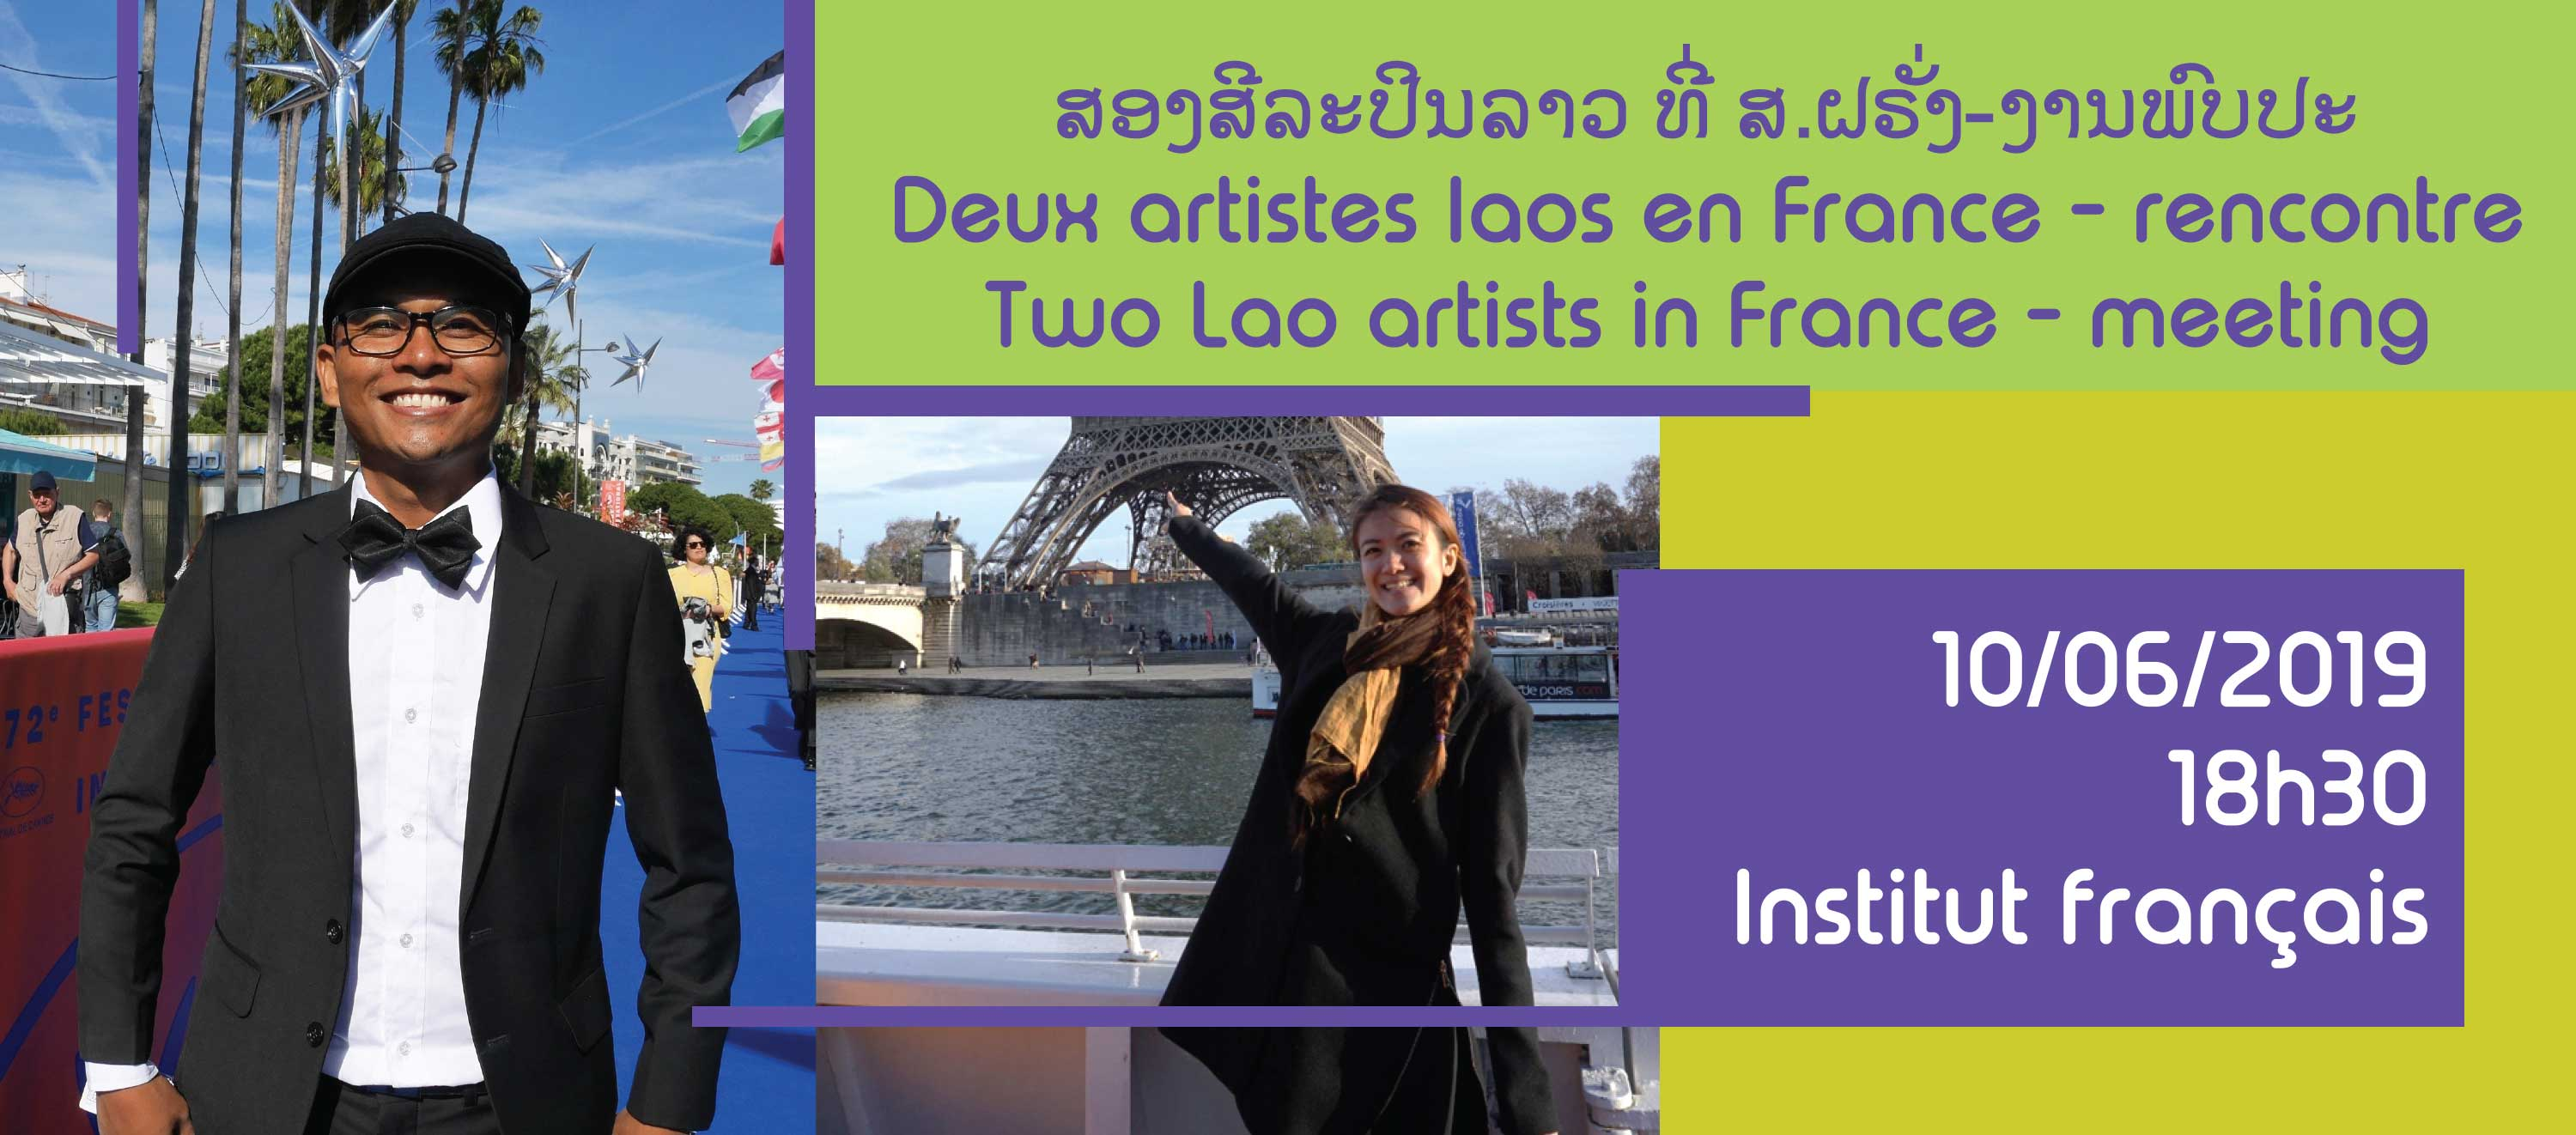 Two Lao artists in France - meeting